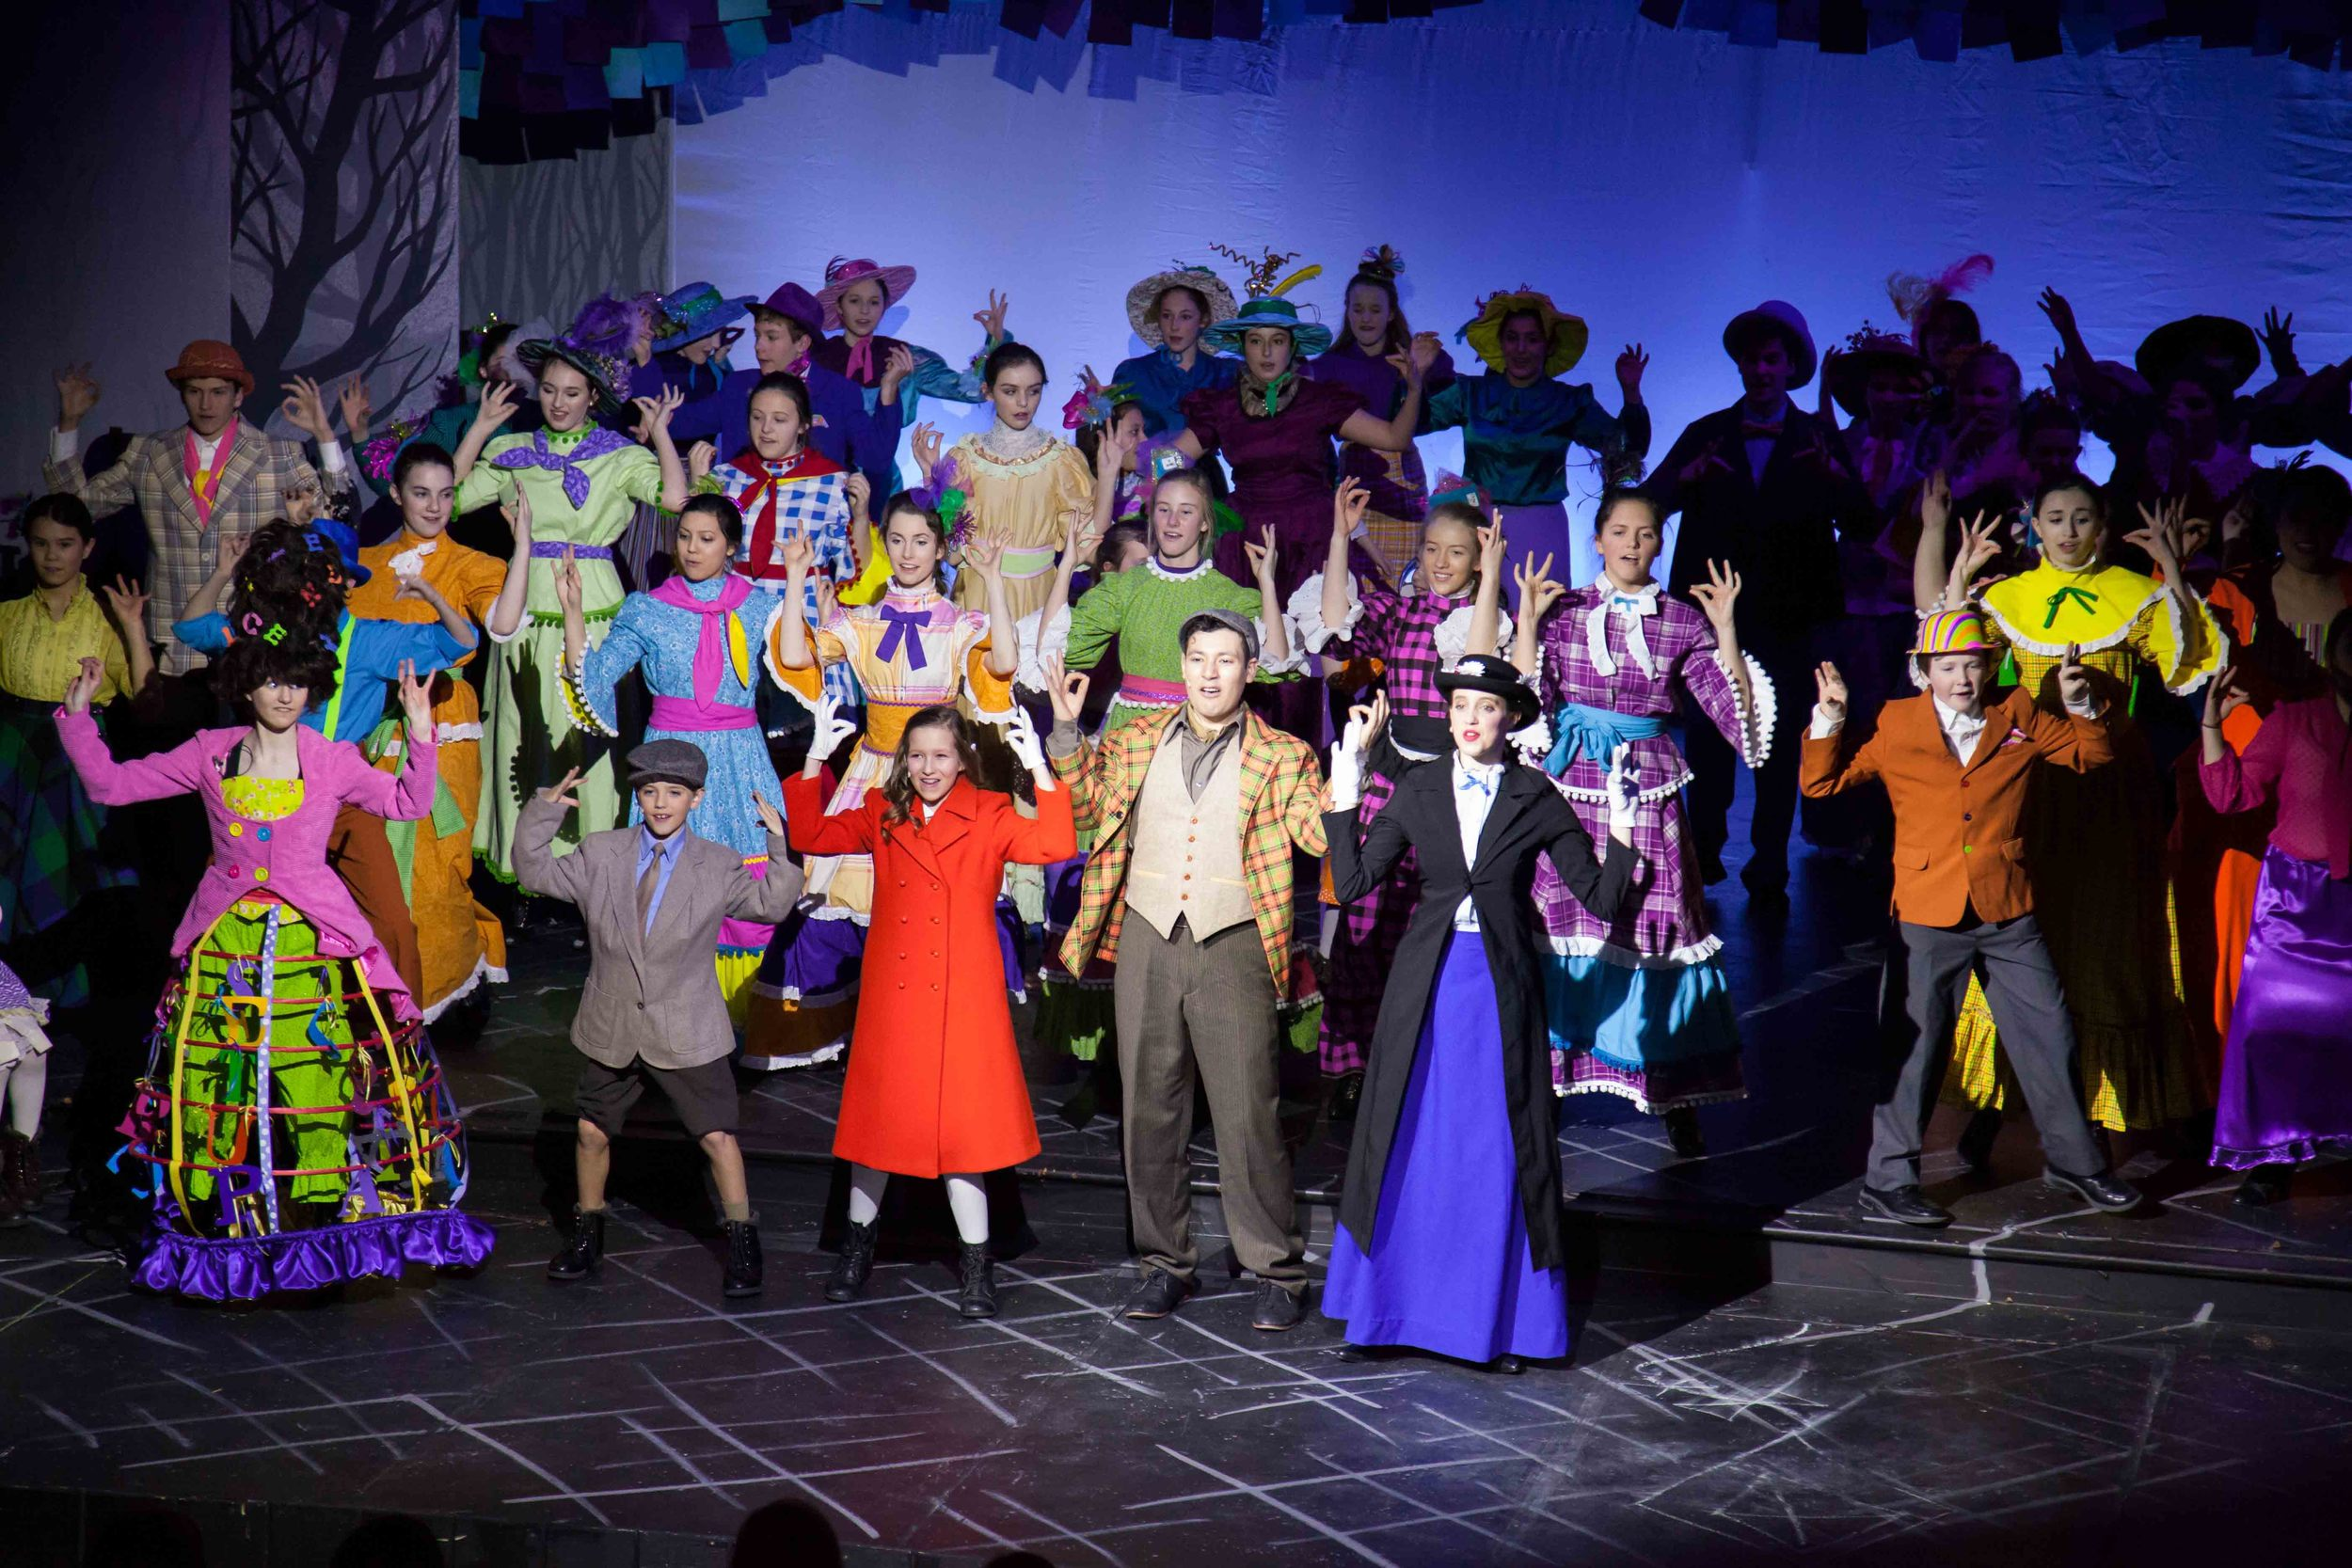 2-4-16 Mary Poppins Proper Cast 0264.jpg